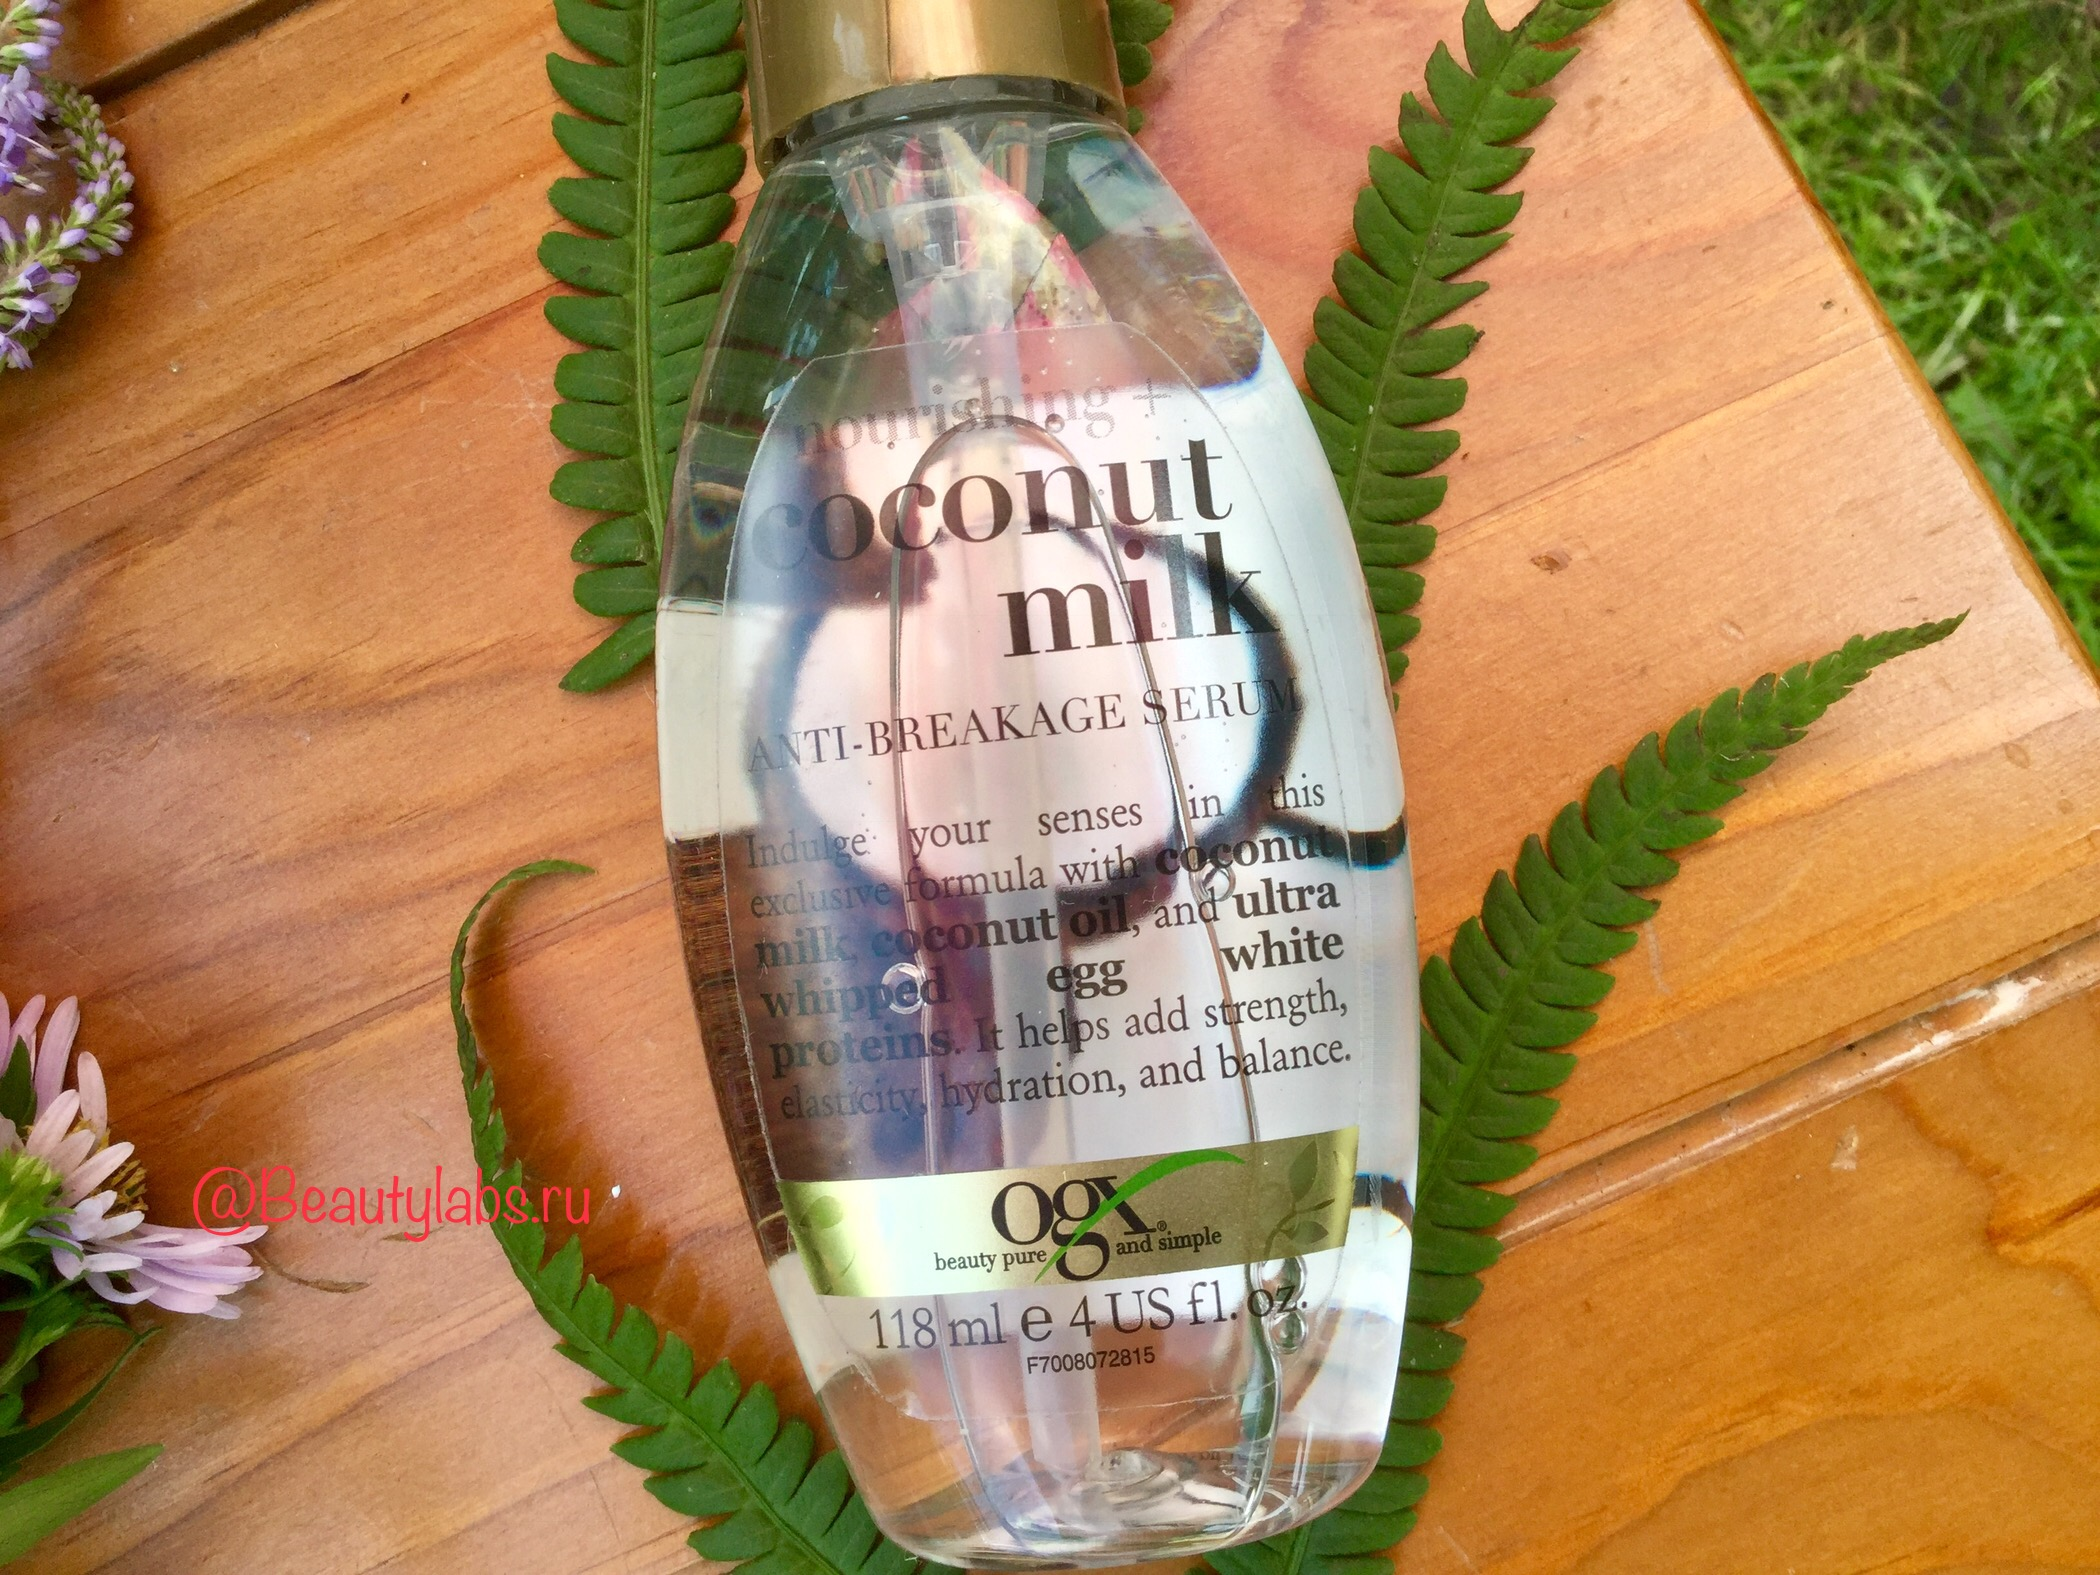 Сыворотка для волос OGX Nourishing Coconut Milk Anti-Breakage Serum